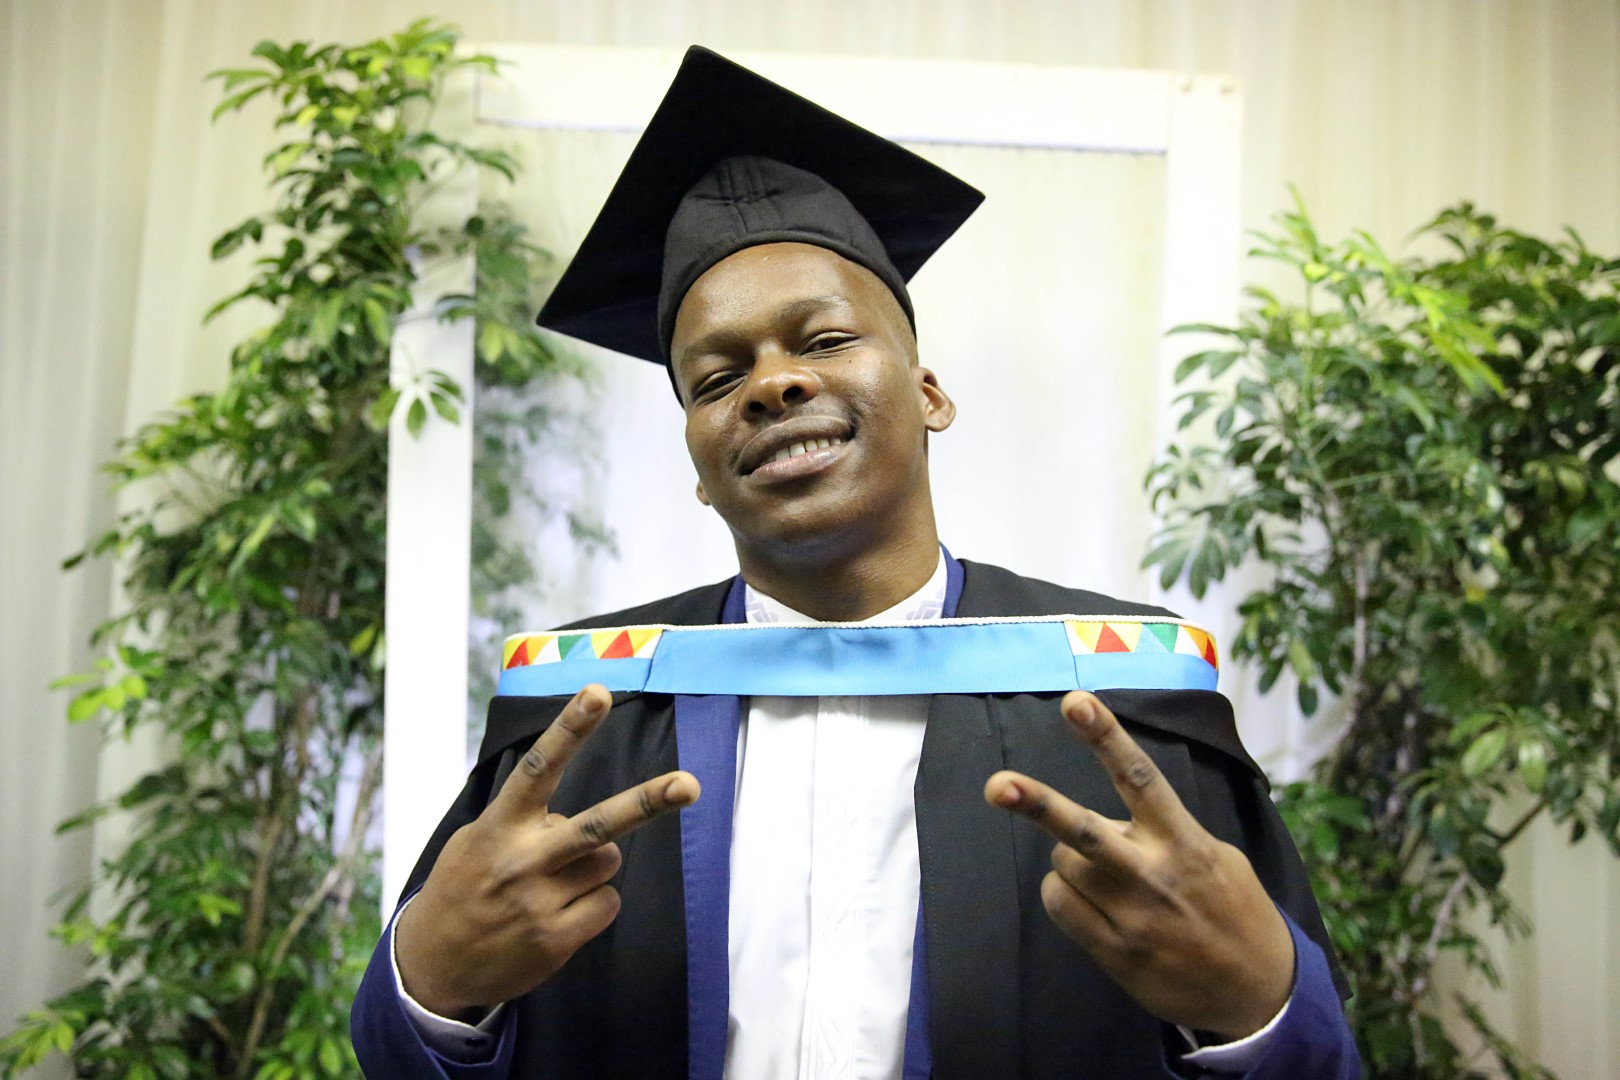 Mr Melikhaya Noqamza graduated with his Bachelor of Visual Arts (Honours) from UKZN